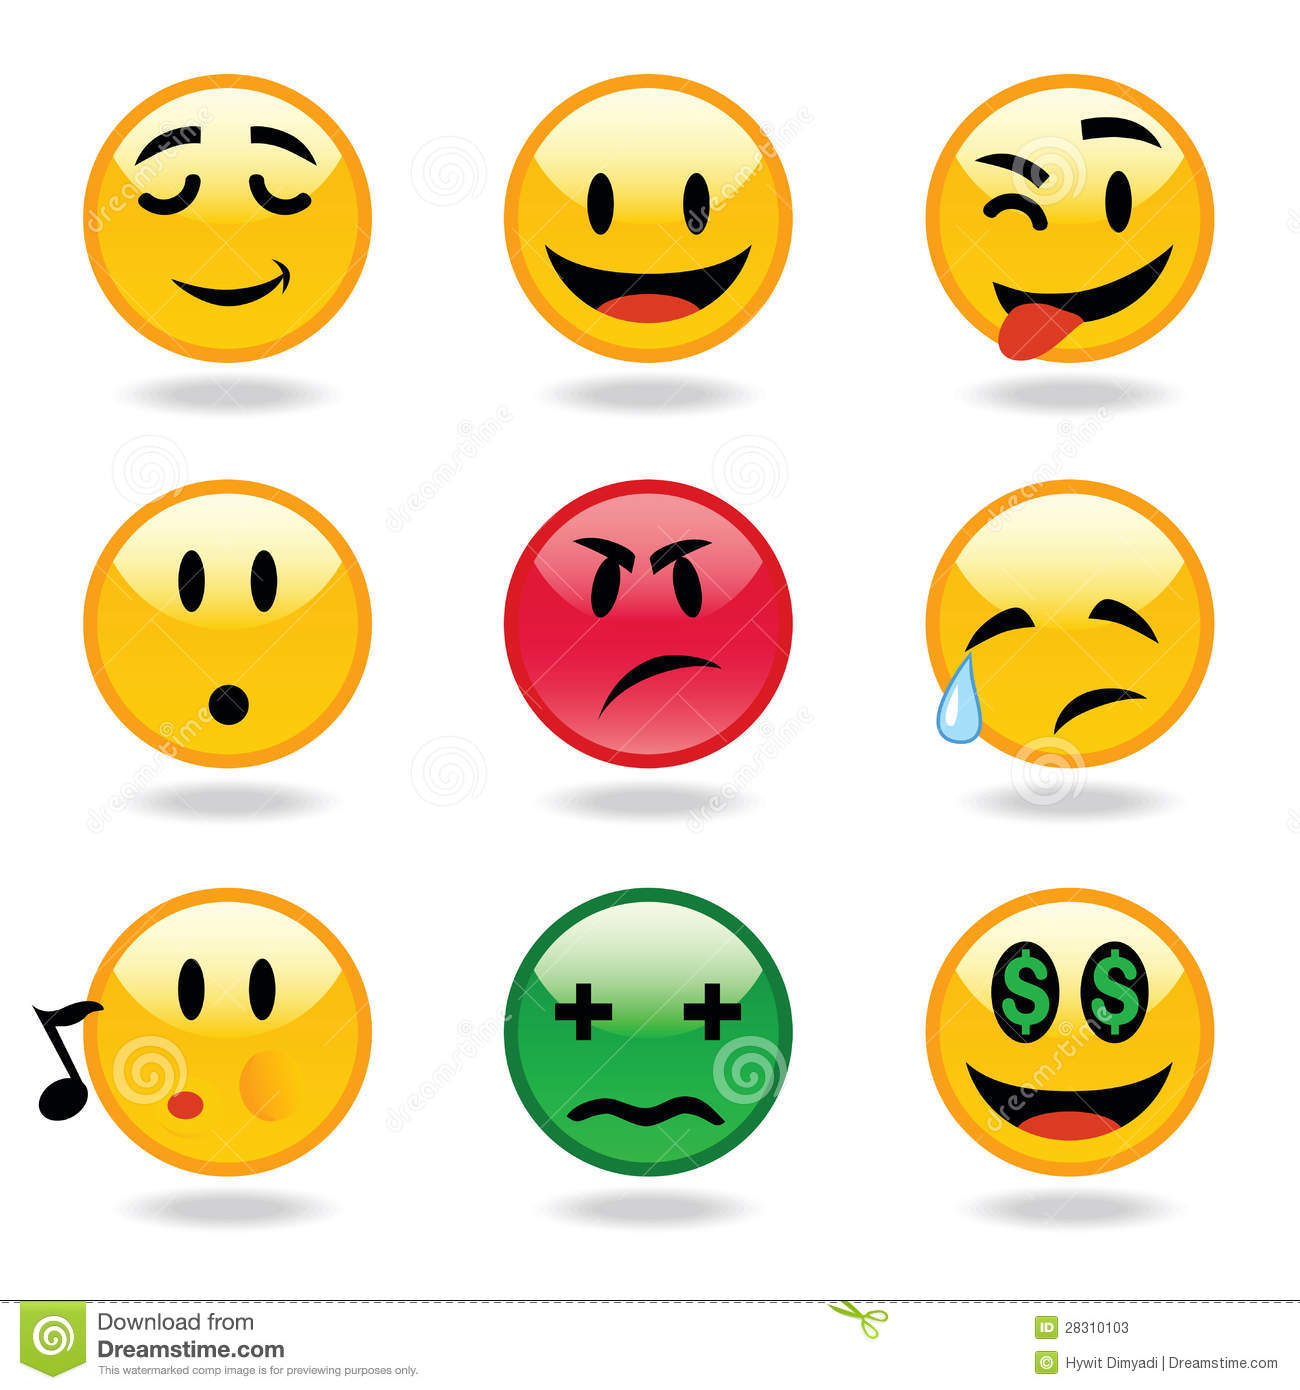 Emoticons expressions